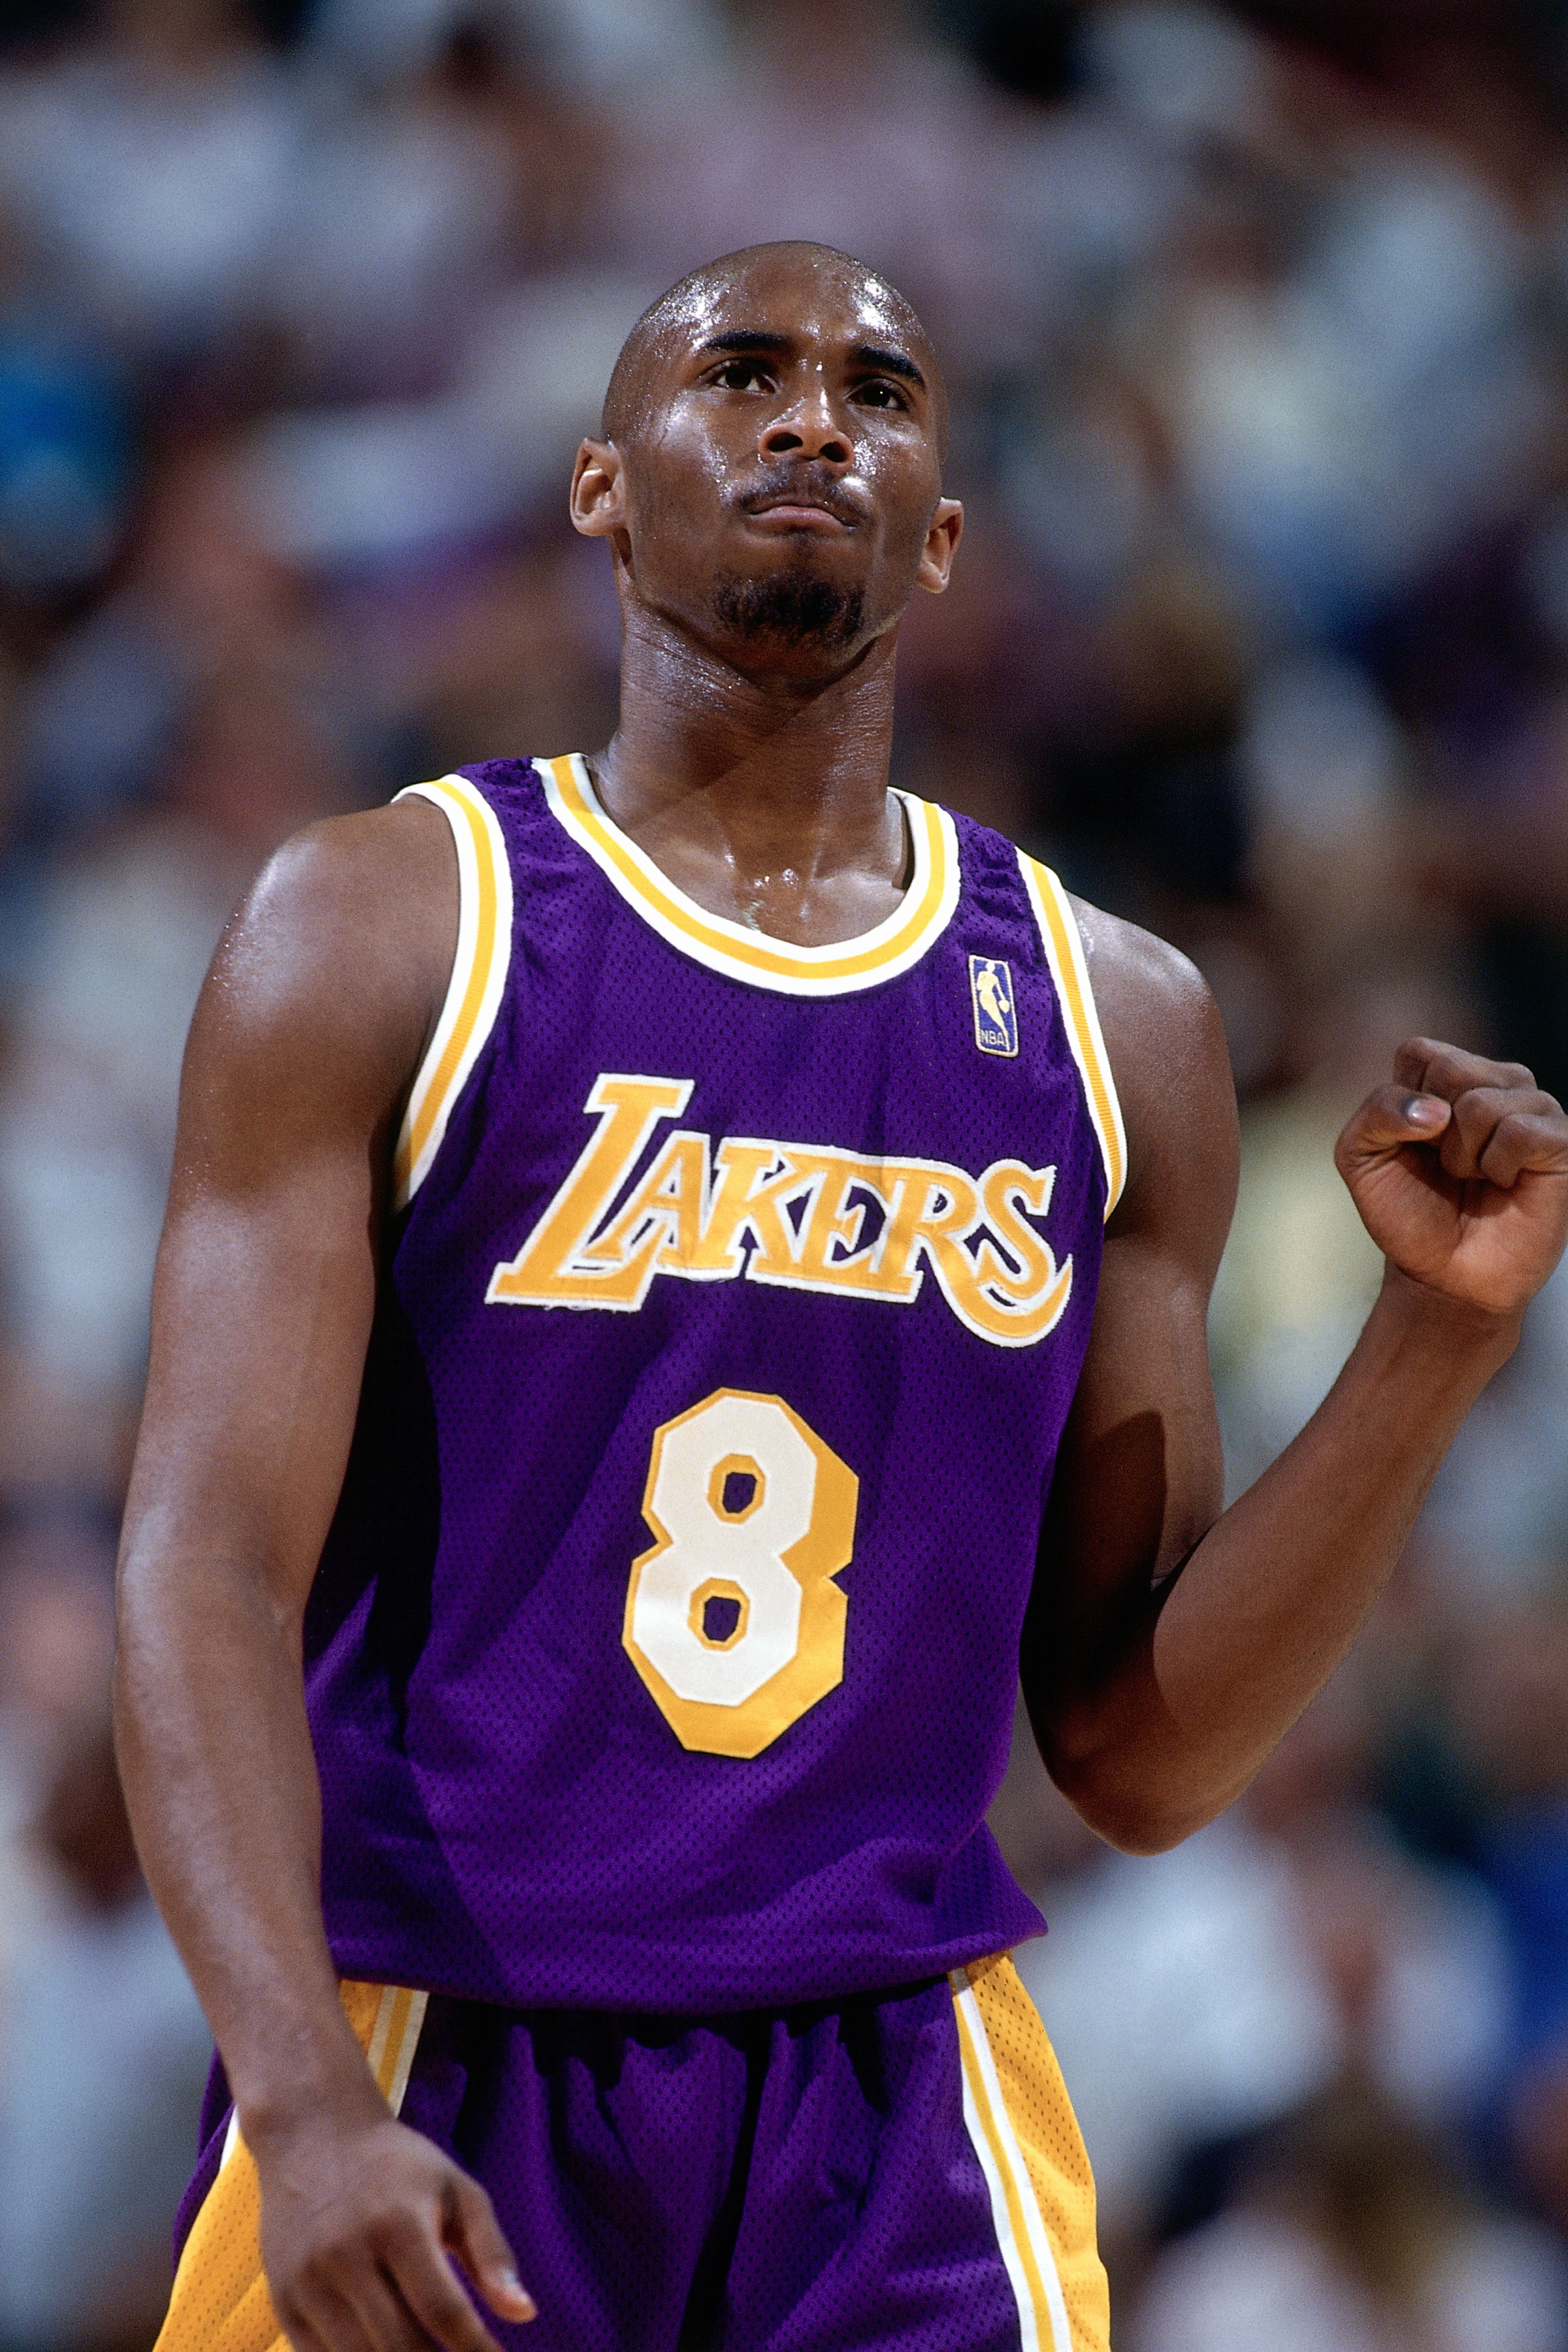 Bryant's first big test came against the Utah Jazz in Salt Lake City on May 12,1997. Faced with a must-win fifth game in Round 2 of the Western Conference Playoffs, the young rookie  airballed  four crucial shots — including a game-winner in the fourth quarter and three three-pointers in overtime — as the Lakers were knocked out.